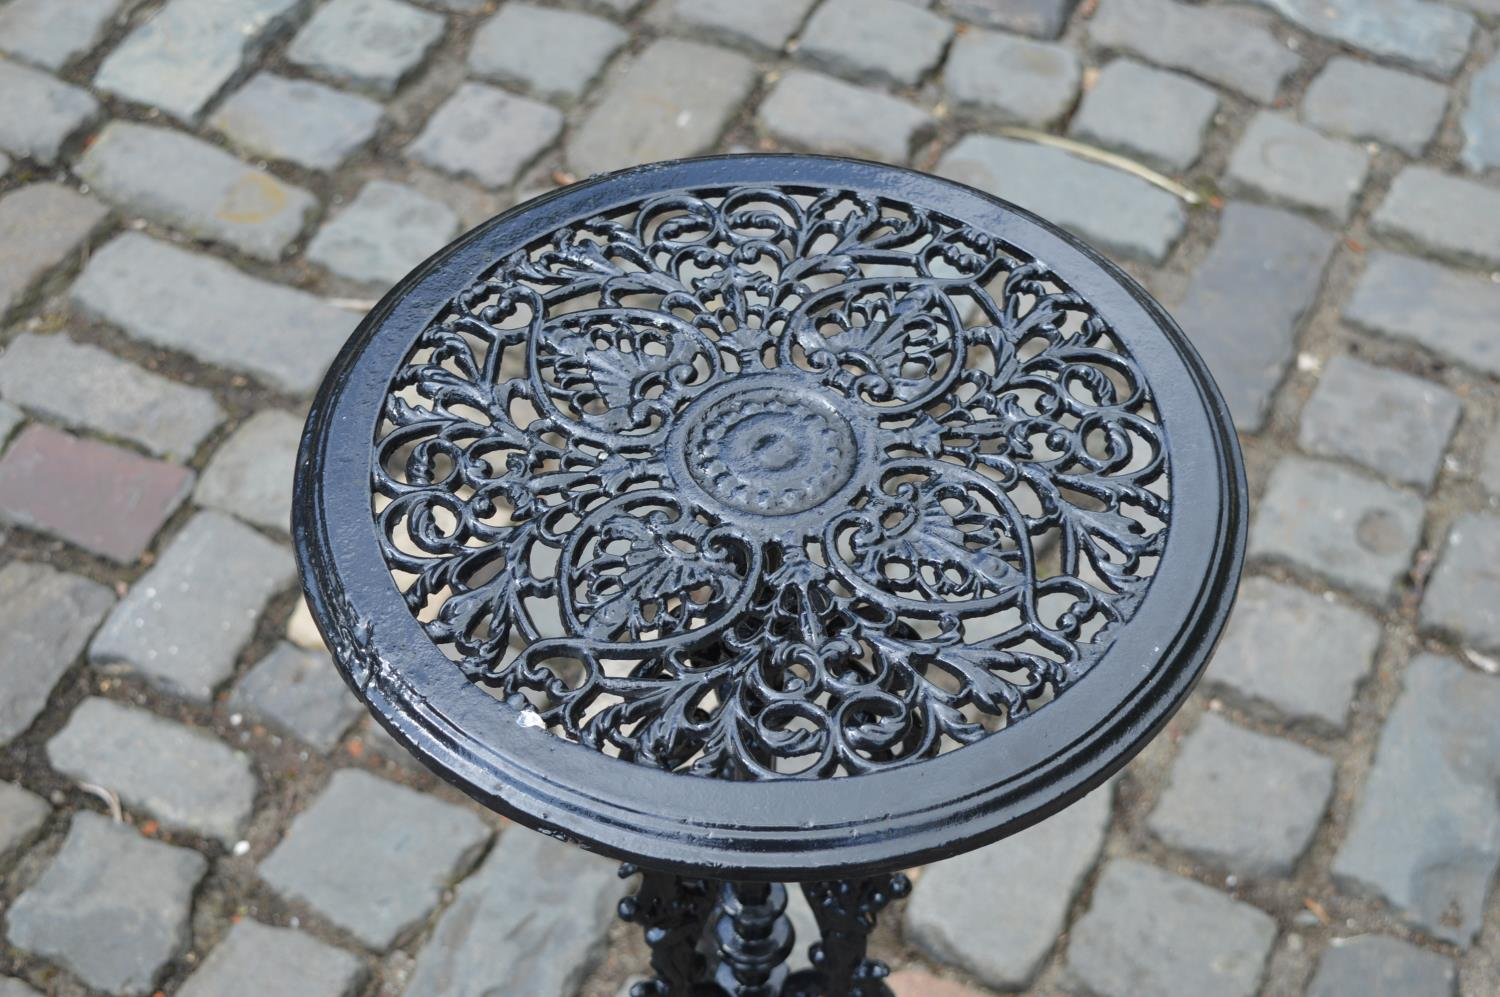 Cast iron patio drinks table - Image 2 of 2